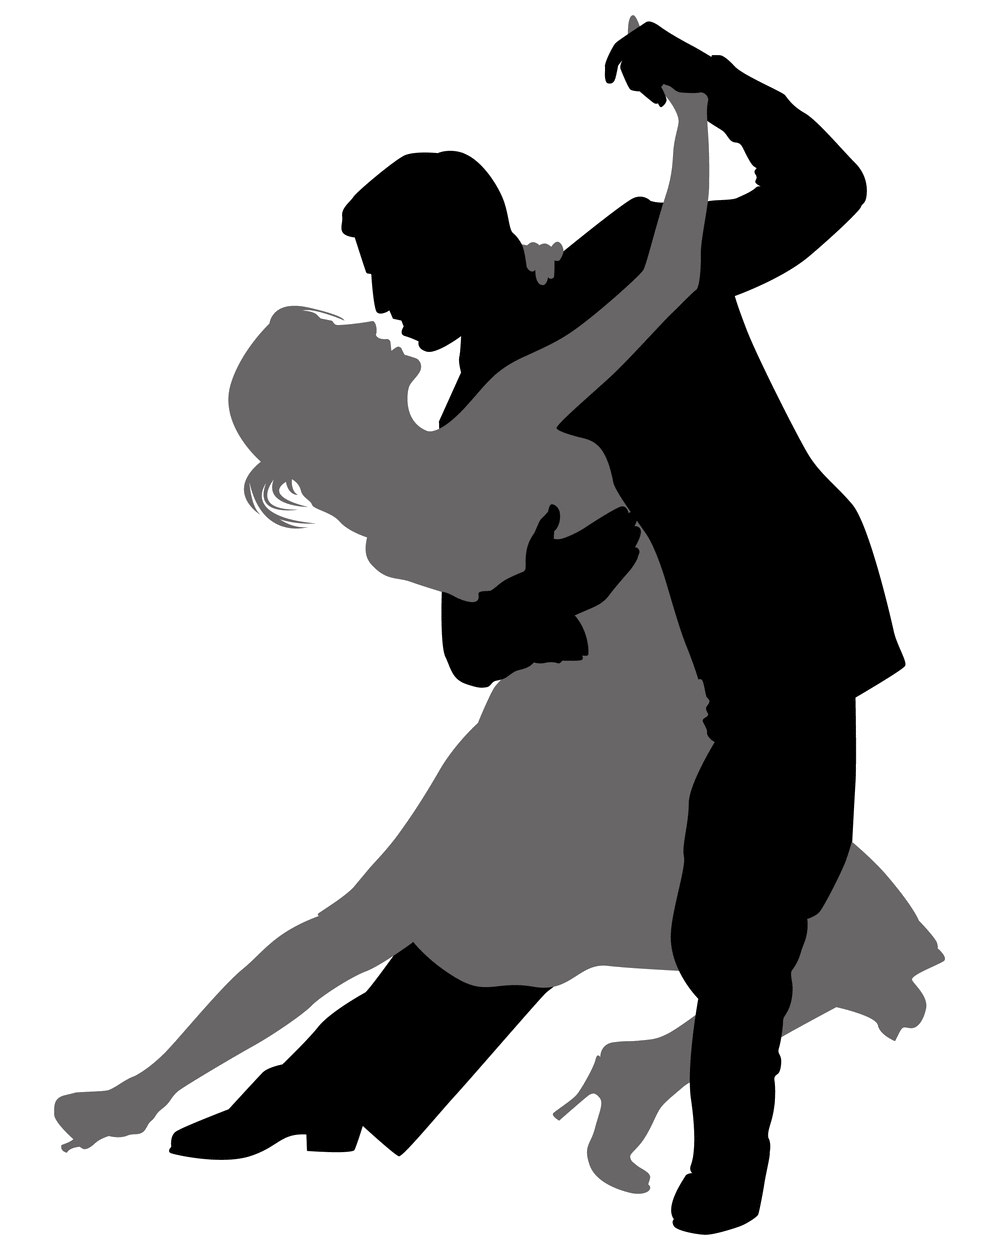 Lady clipart dance. Cuba silhouette at getdrawings